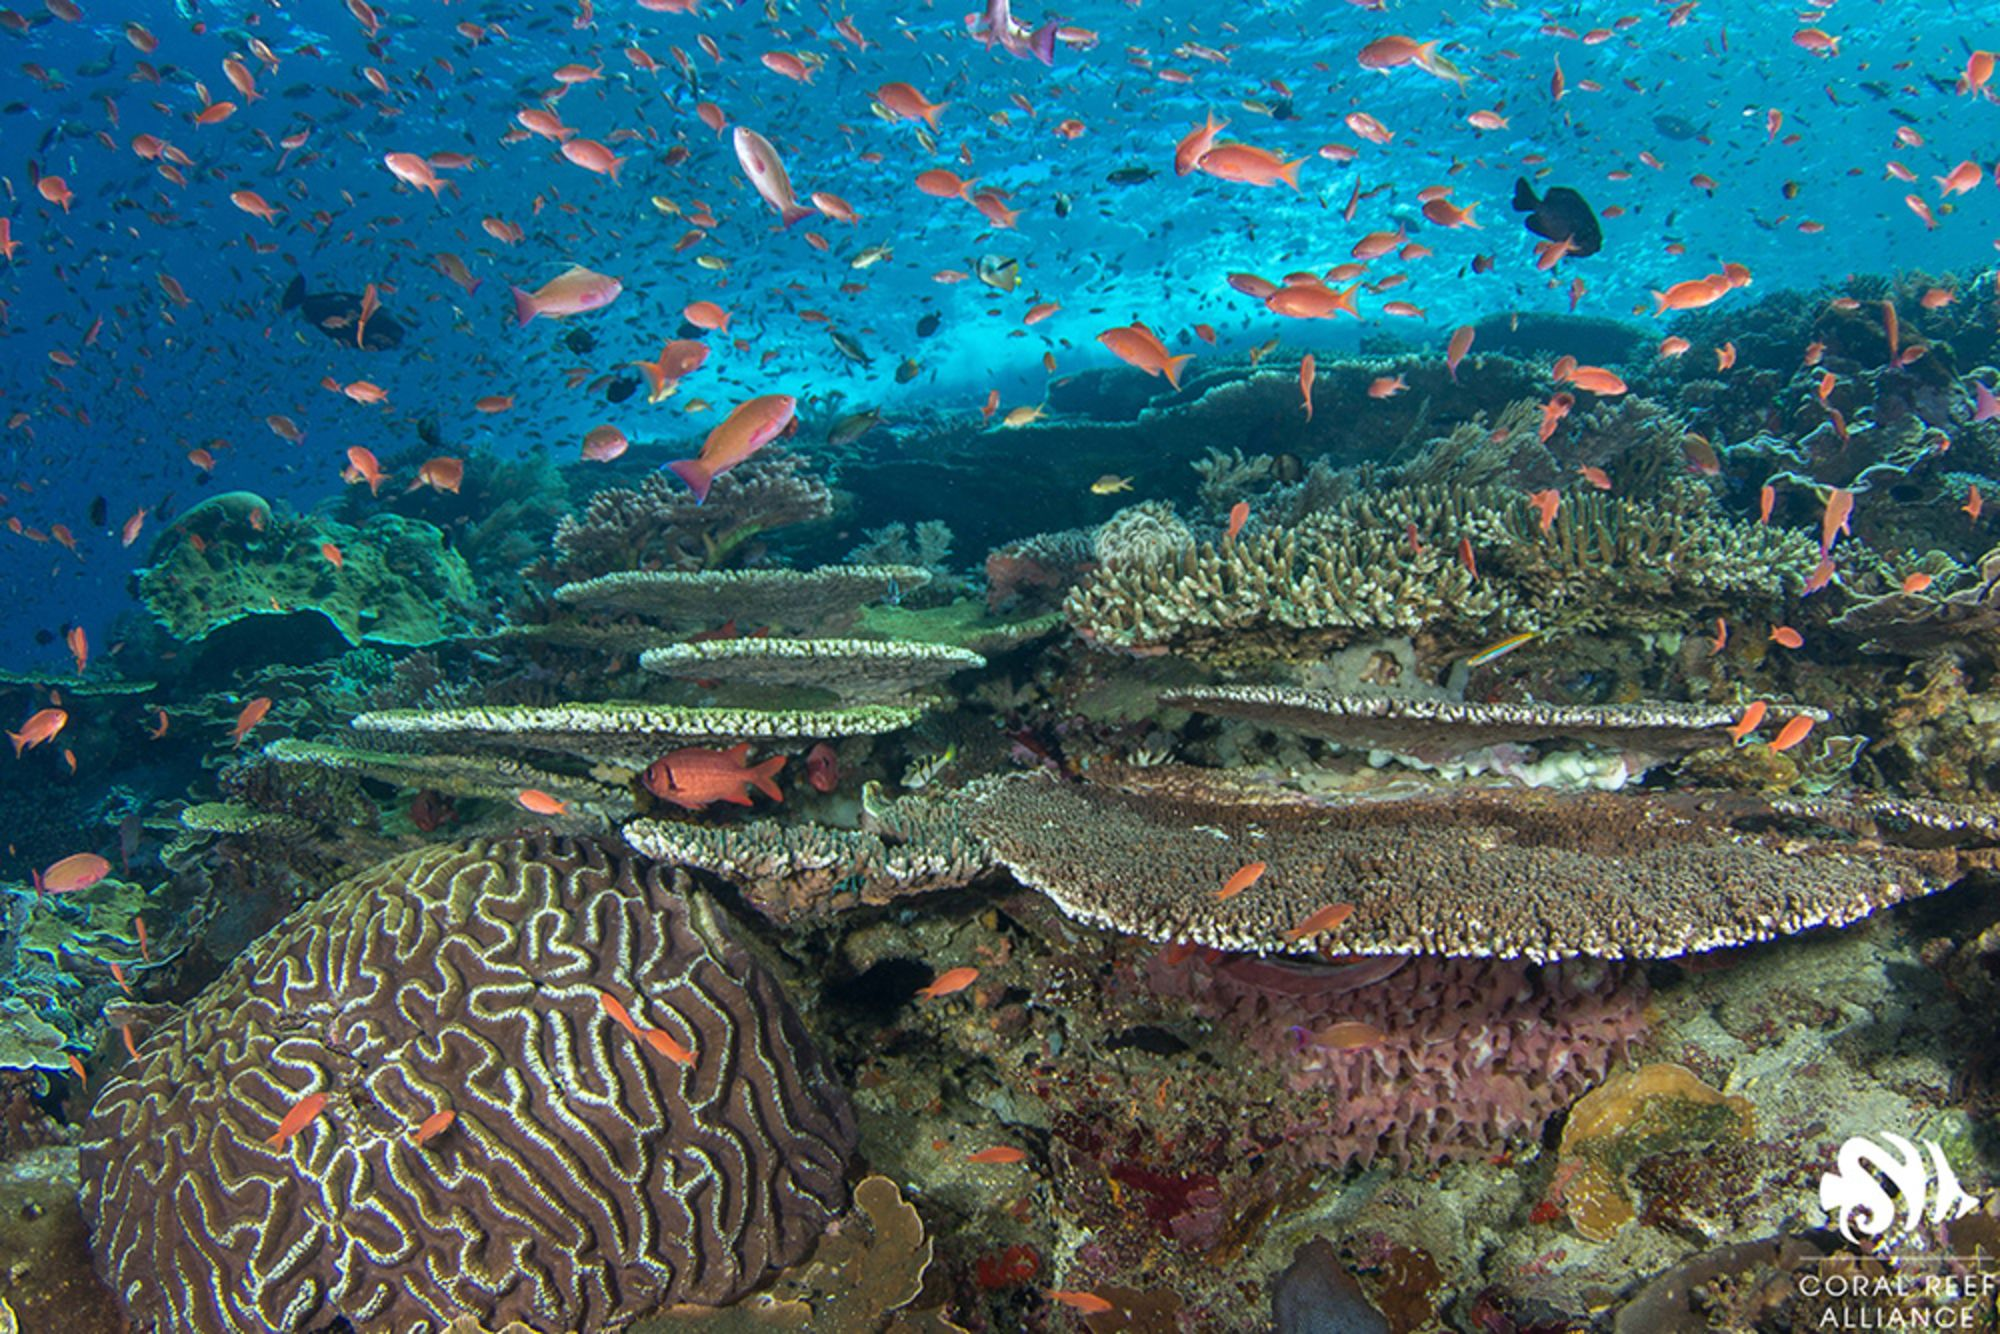 Conservation Spotlight: Coral Reef Alliance